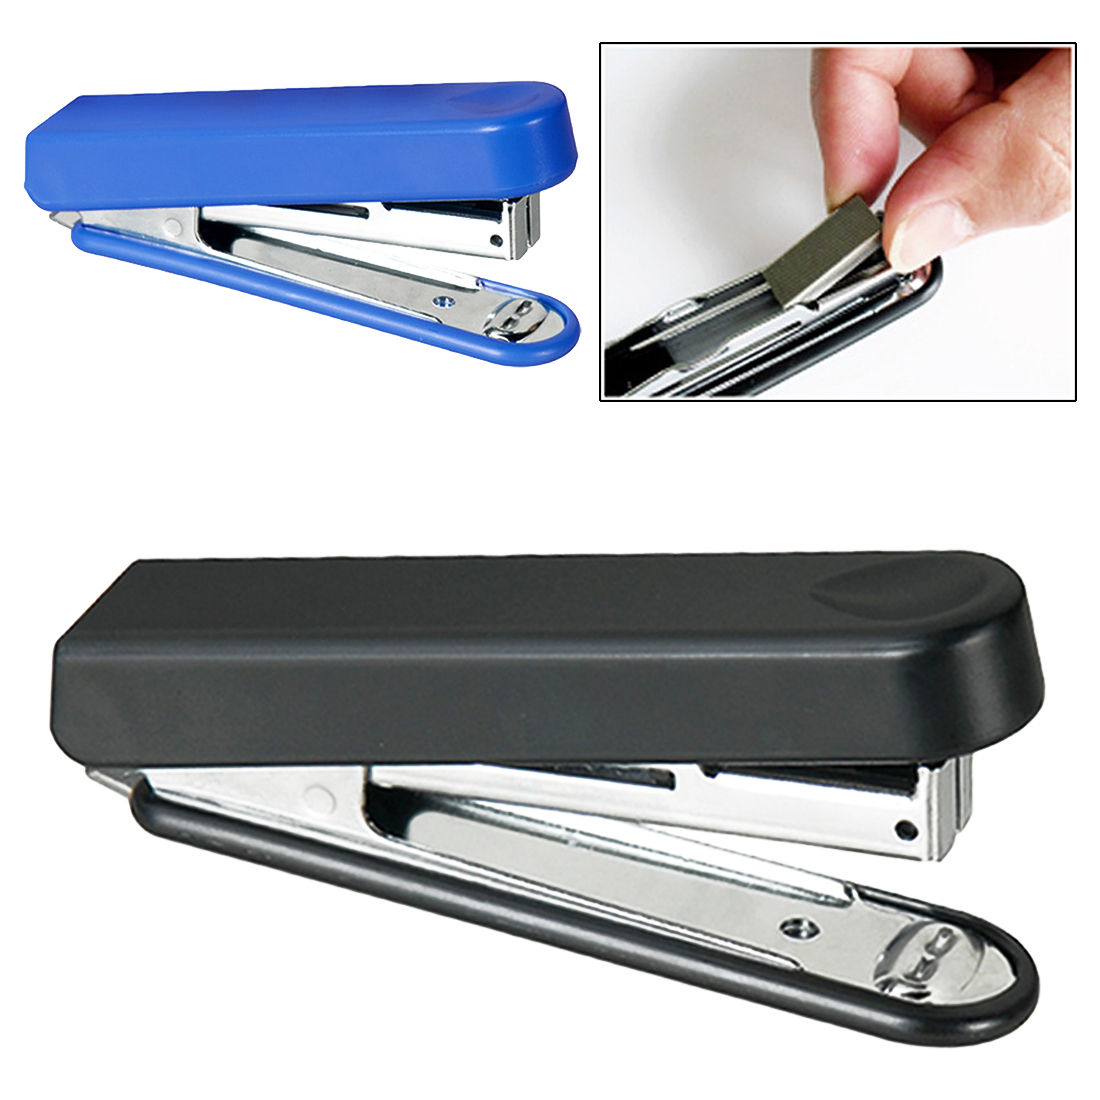 Staplers Business, Office & Industrial Helpful Cute Portable Stapleless Stapler Paper Binding Binder For Home Office School Hot Keep You Fit All The Time